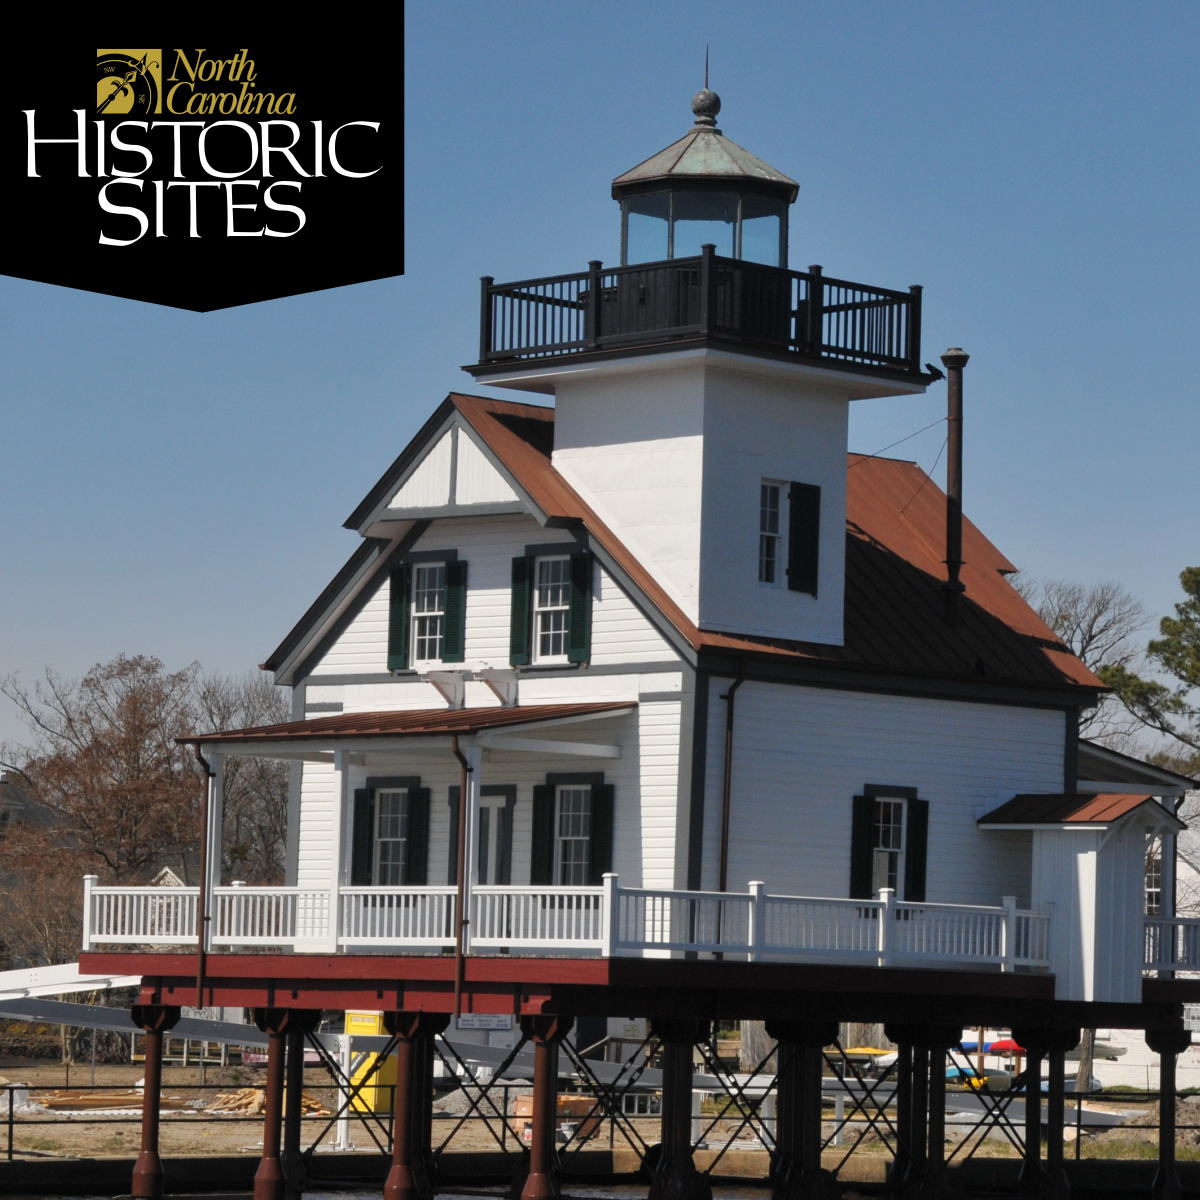 exterior of the Roanoke River Lighthouse